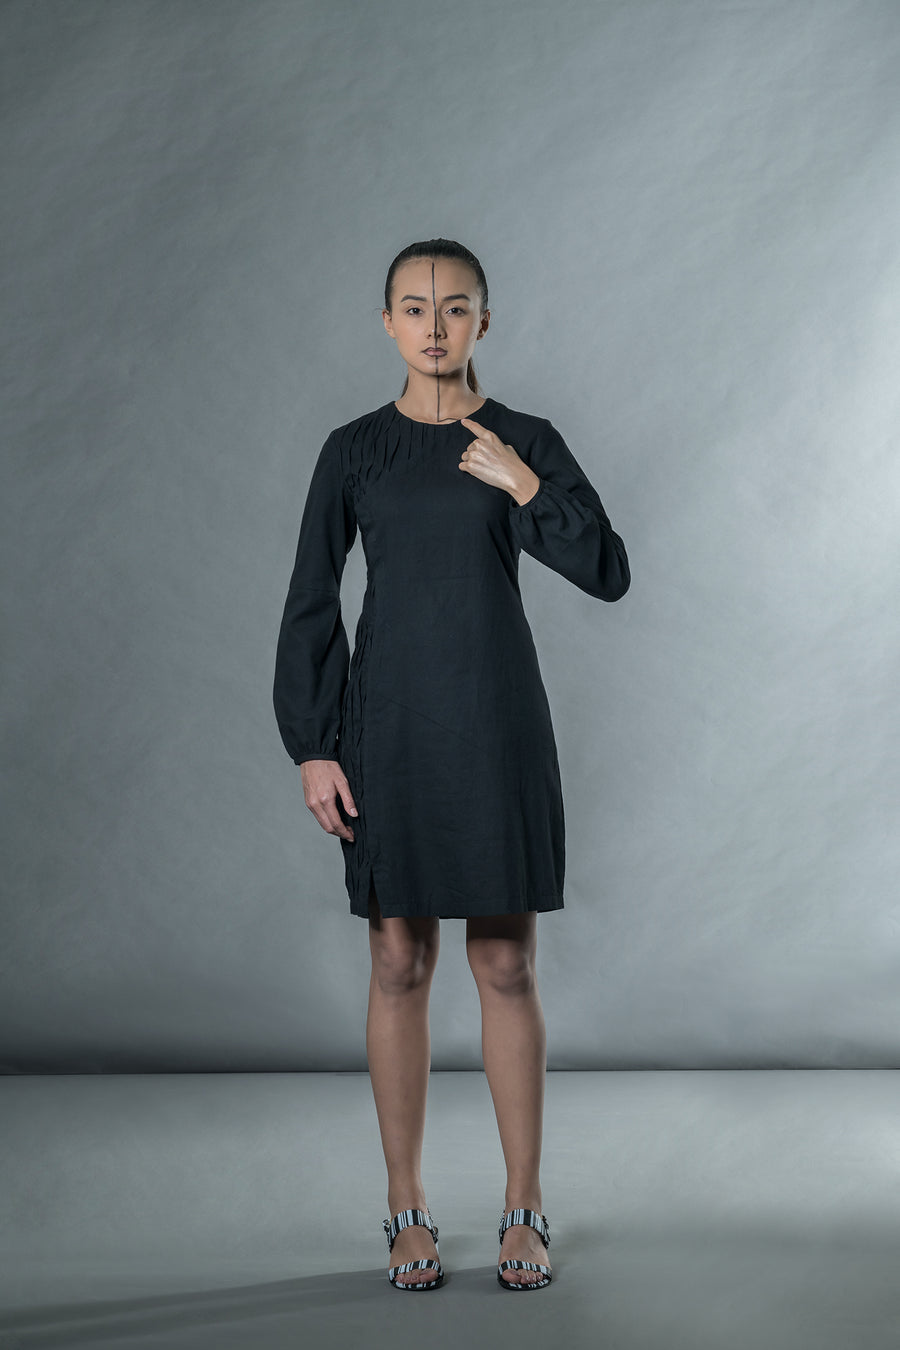 Black dress with wave pleats - Ethical made fashion - onlyethikal